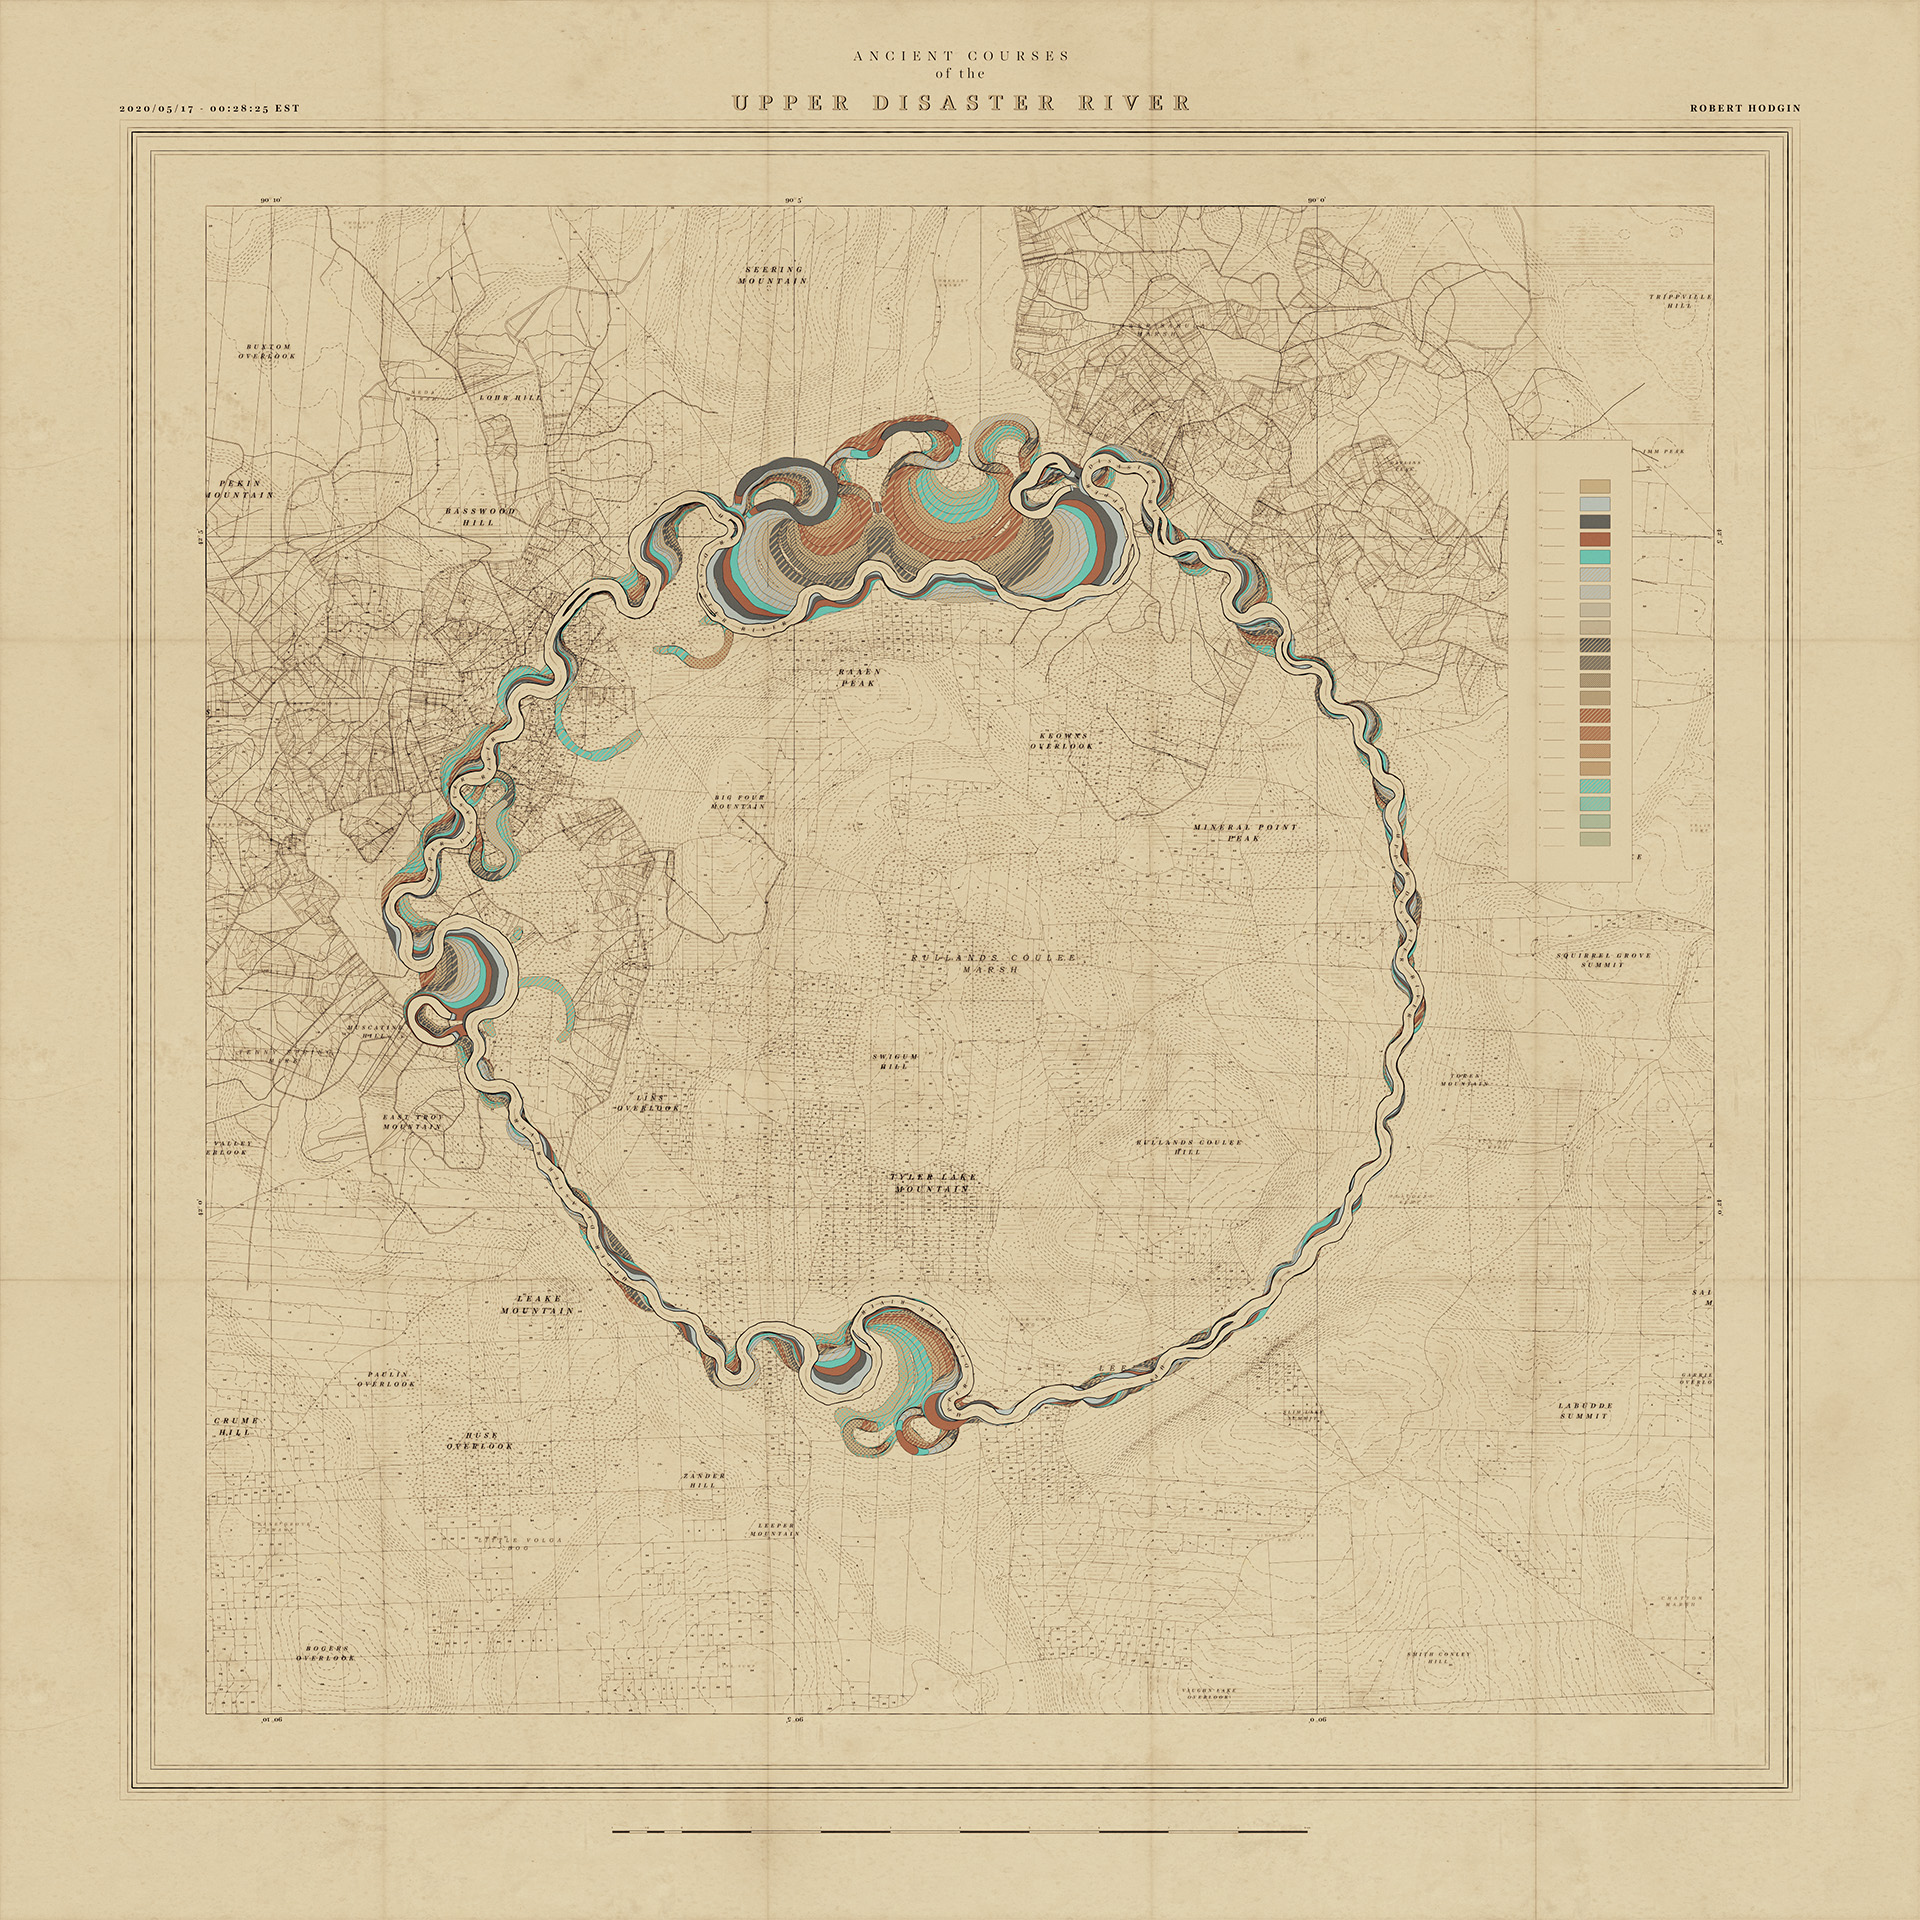 """A map of a nonexistent object, title """"Upper Disaster River"""""""